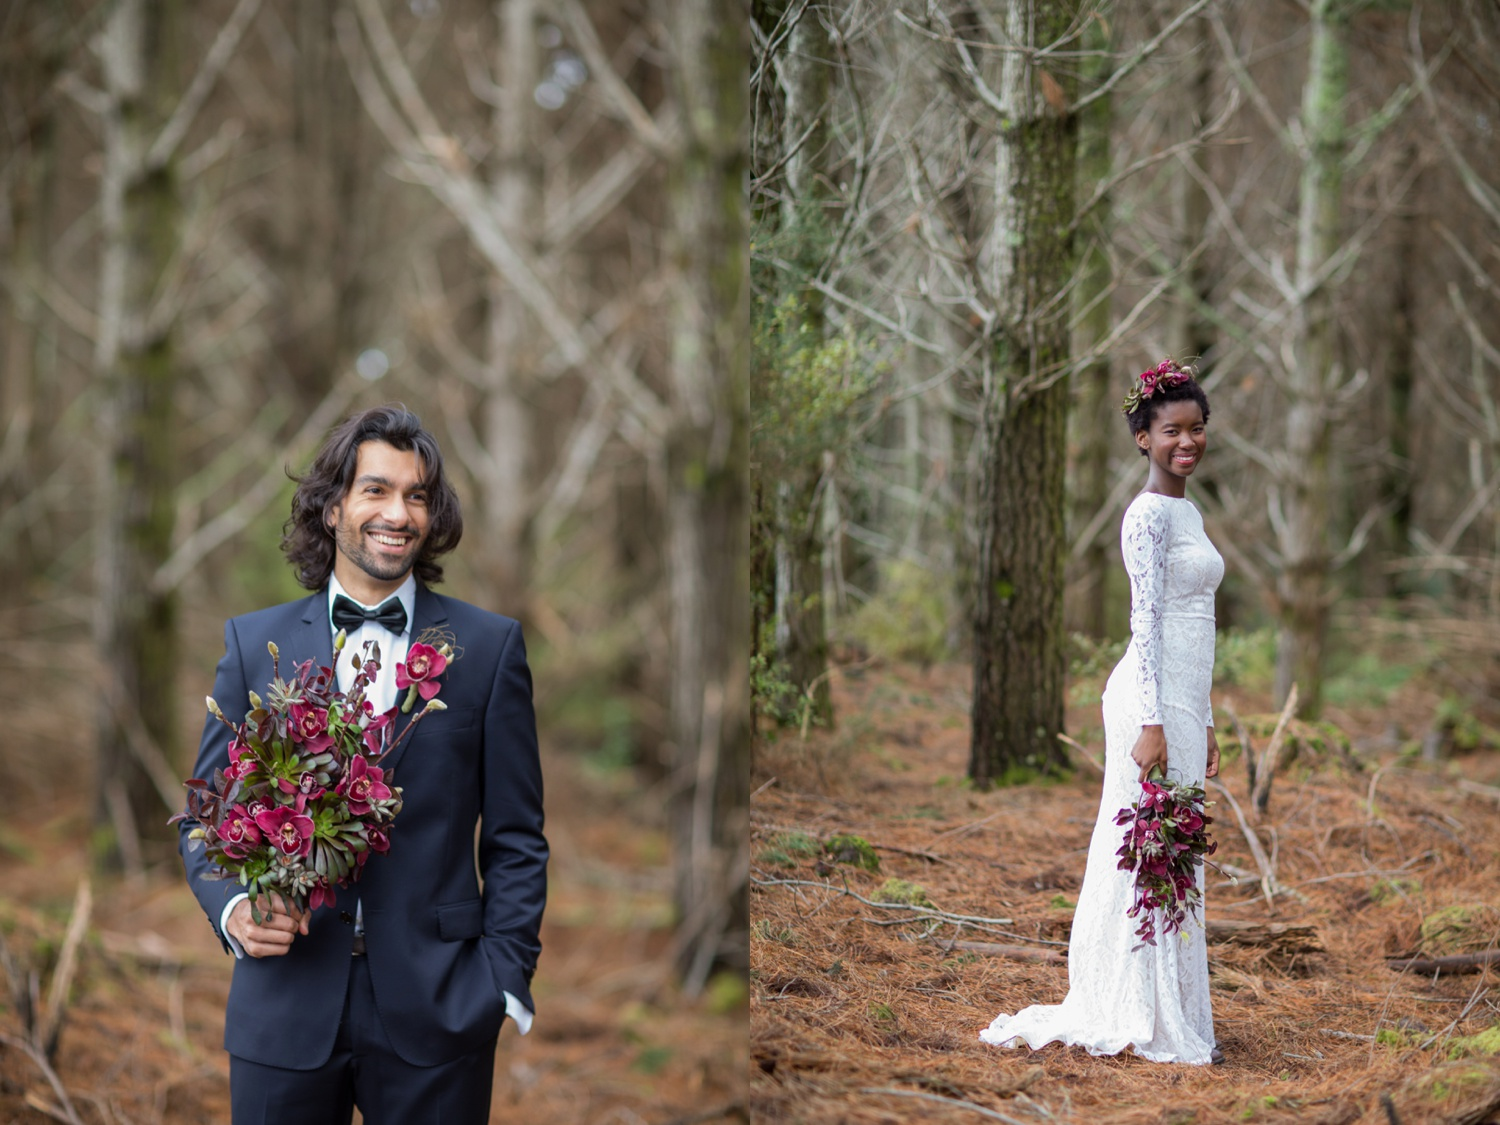 034_aucklandforestwedding.jpg